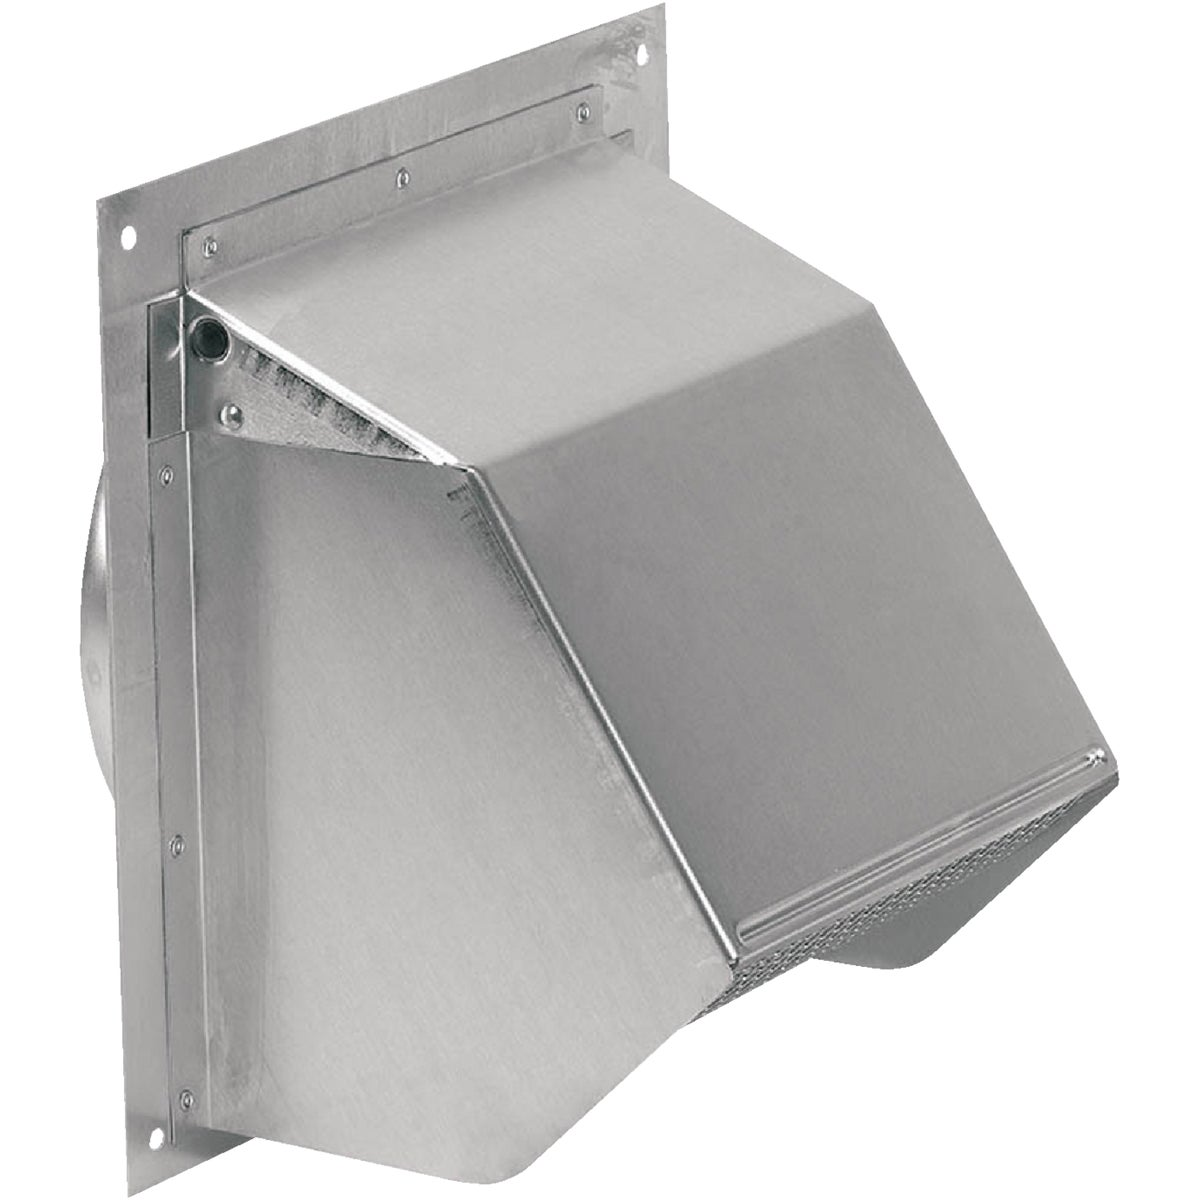 ALUMINUM WALL CAP - 641 by Broan Nutone